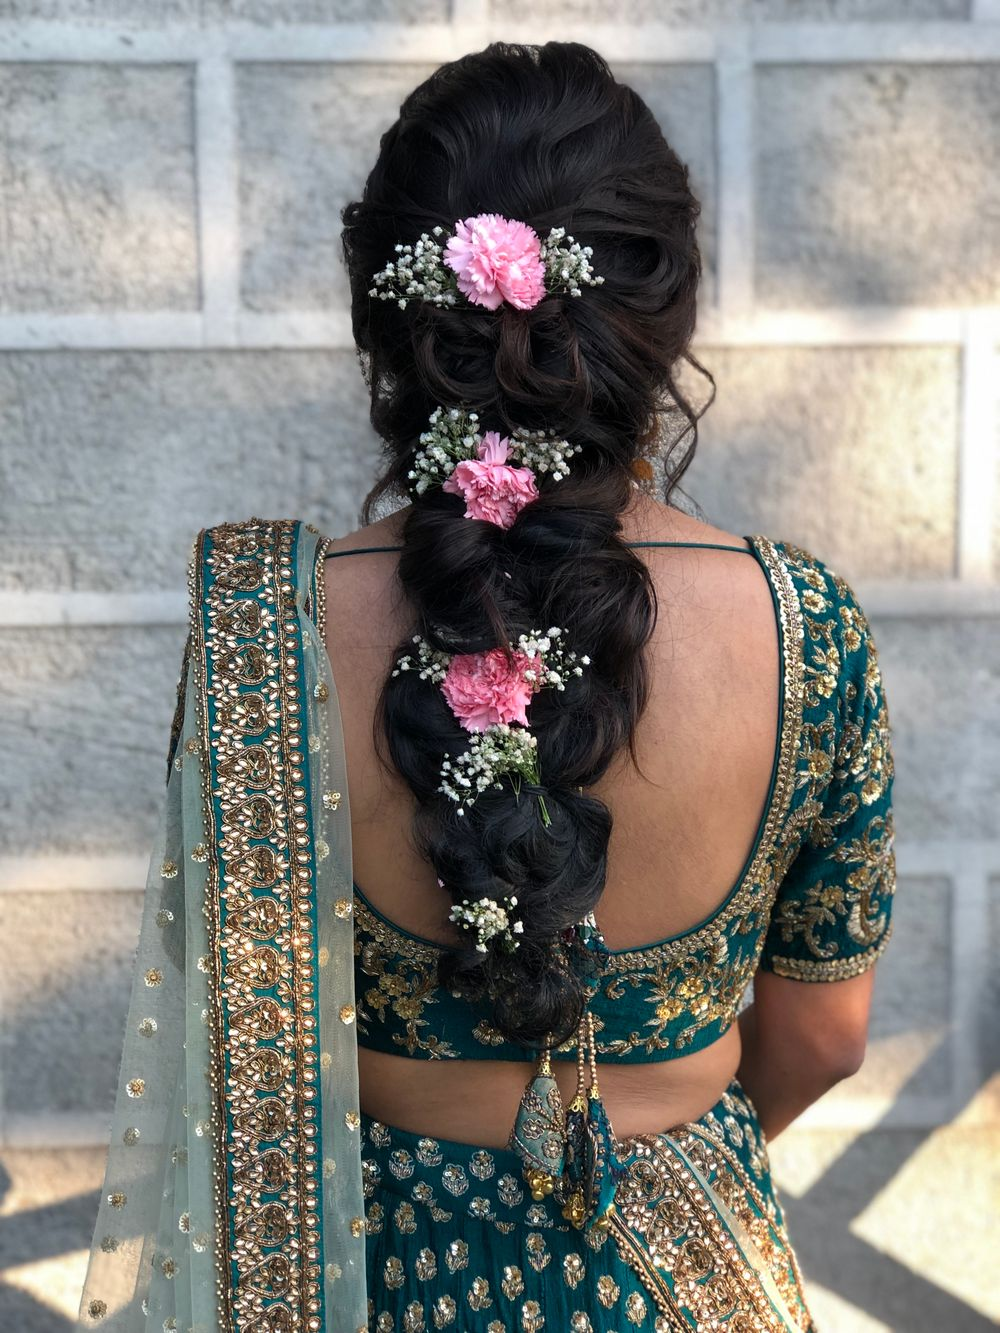 Photo of Braided hairdo with baby's breaths and pink carnations.